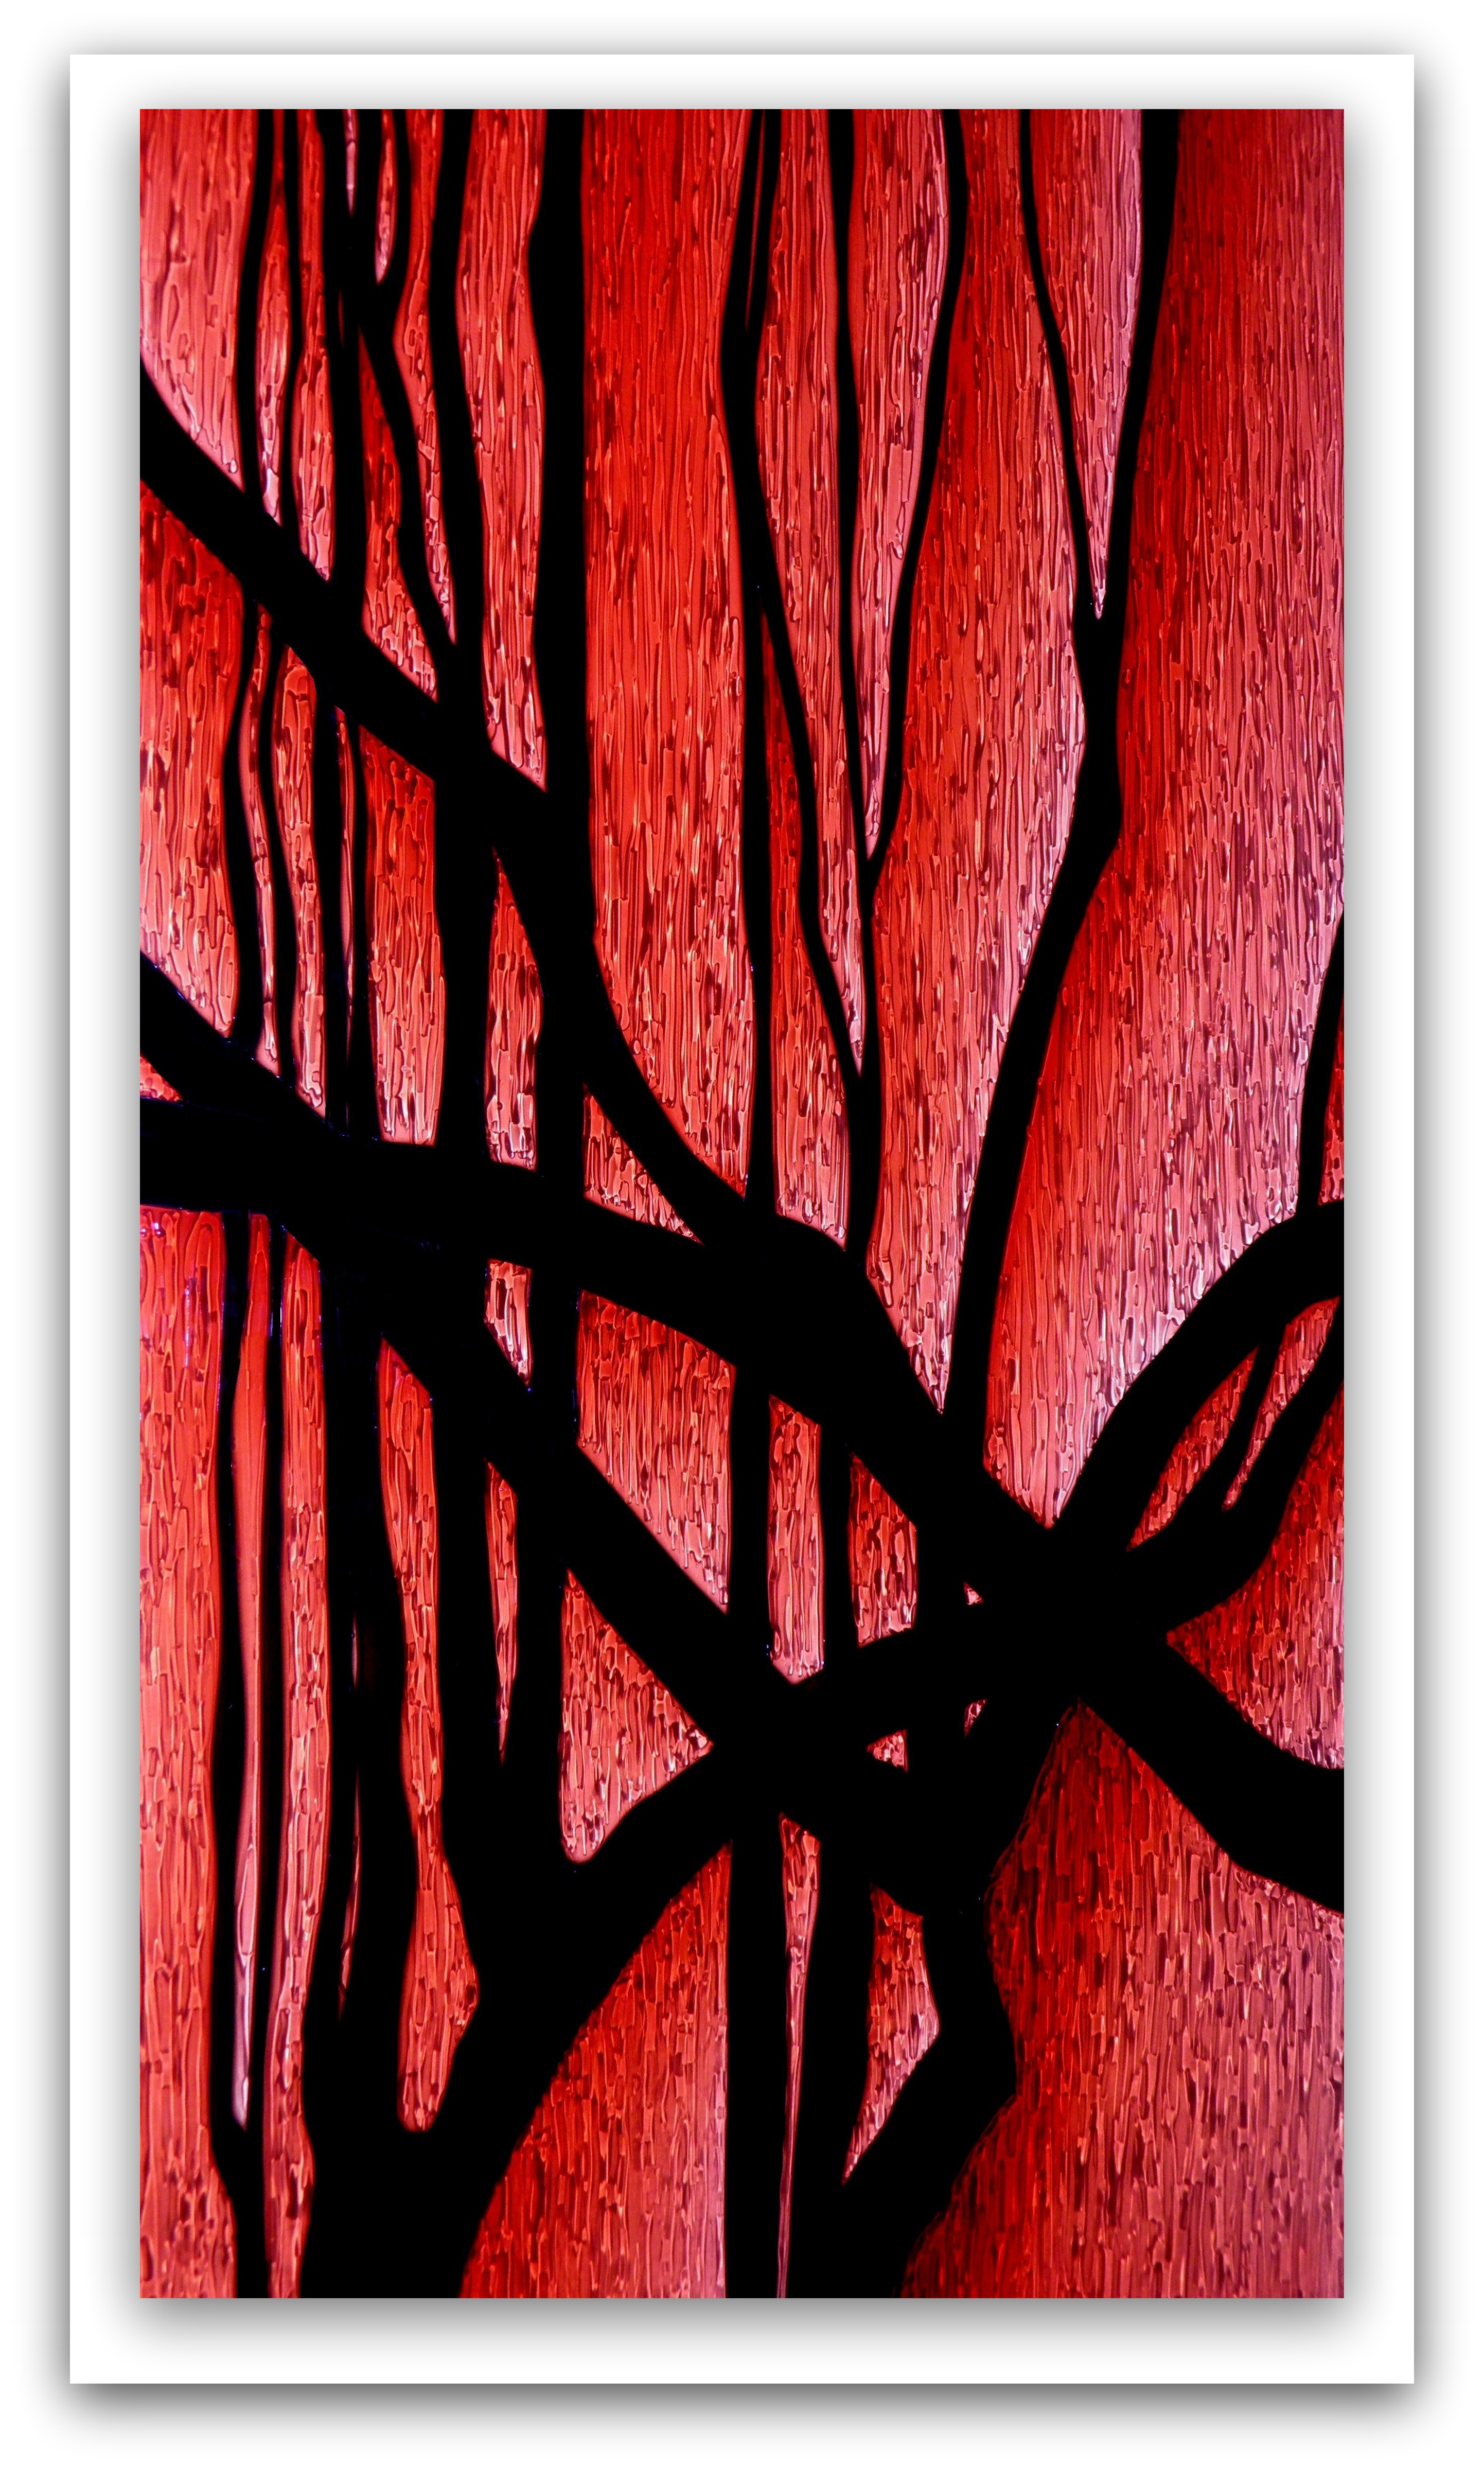 Stained Glass - Bush Ardent